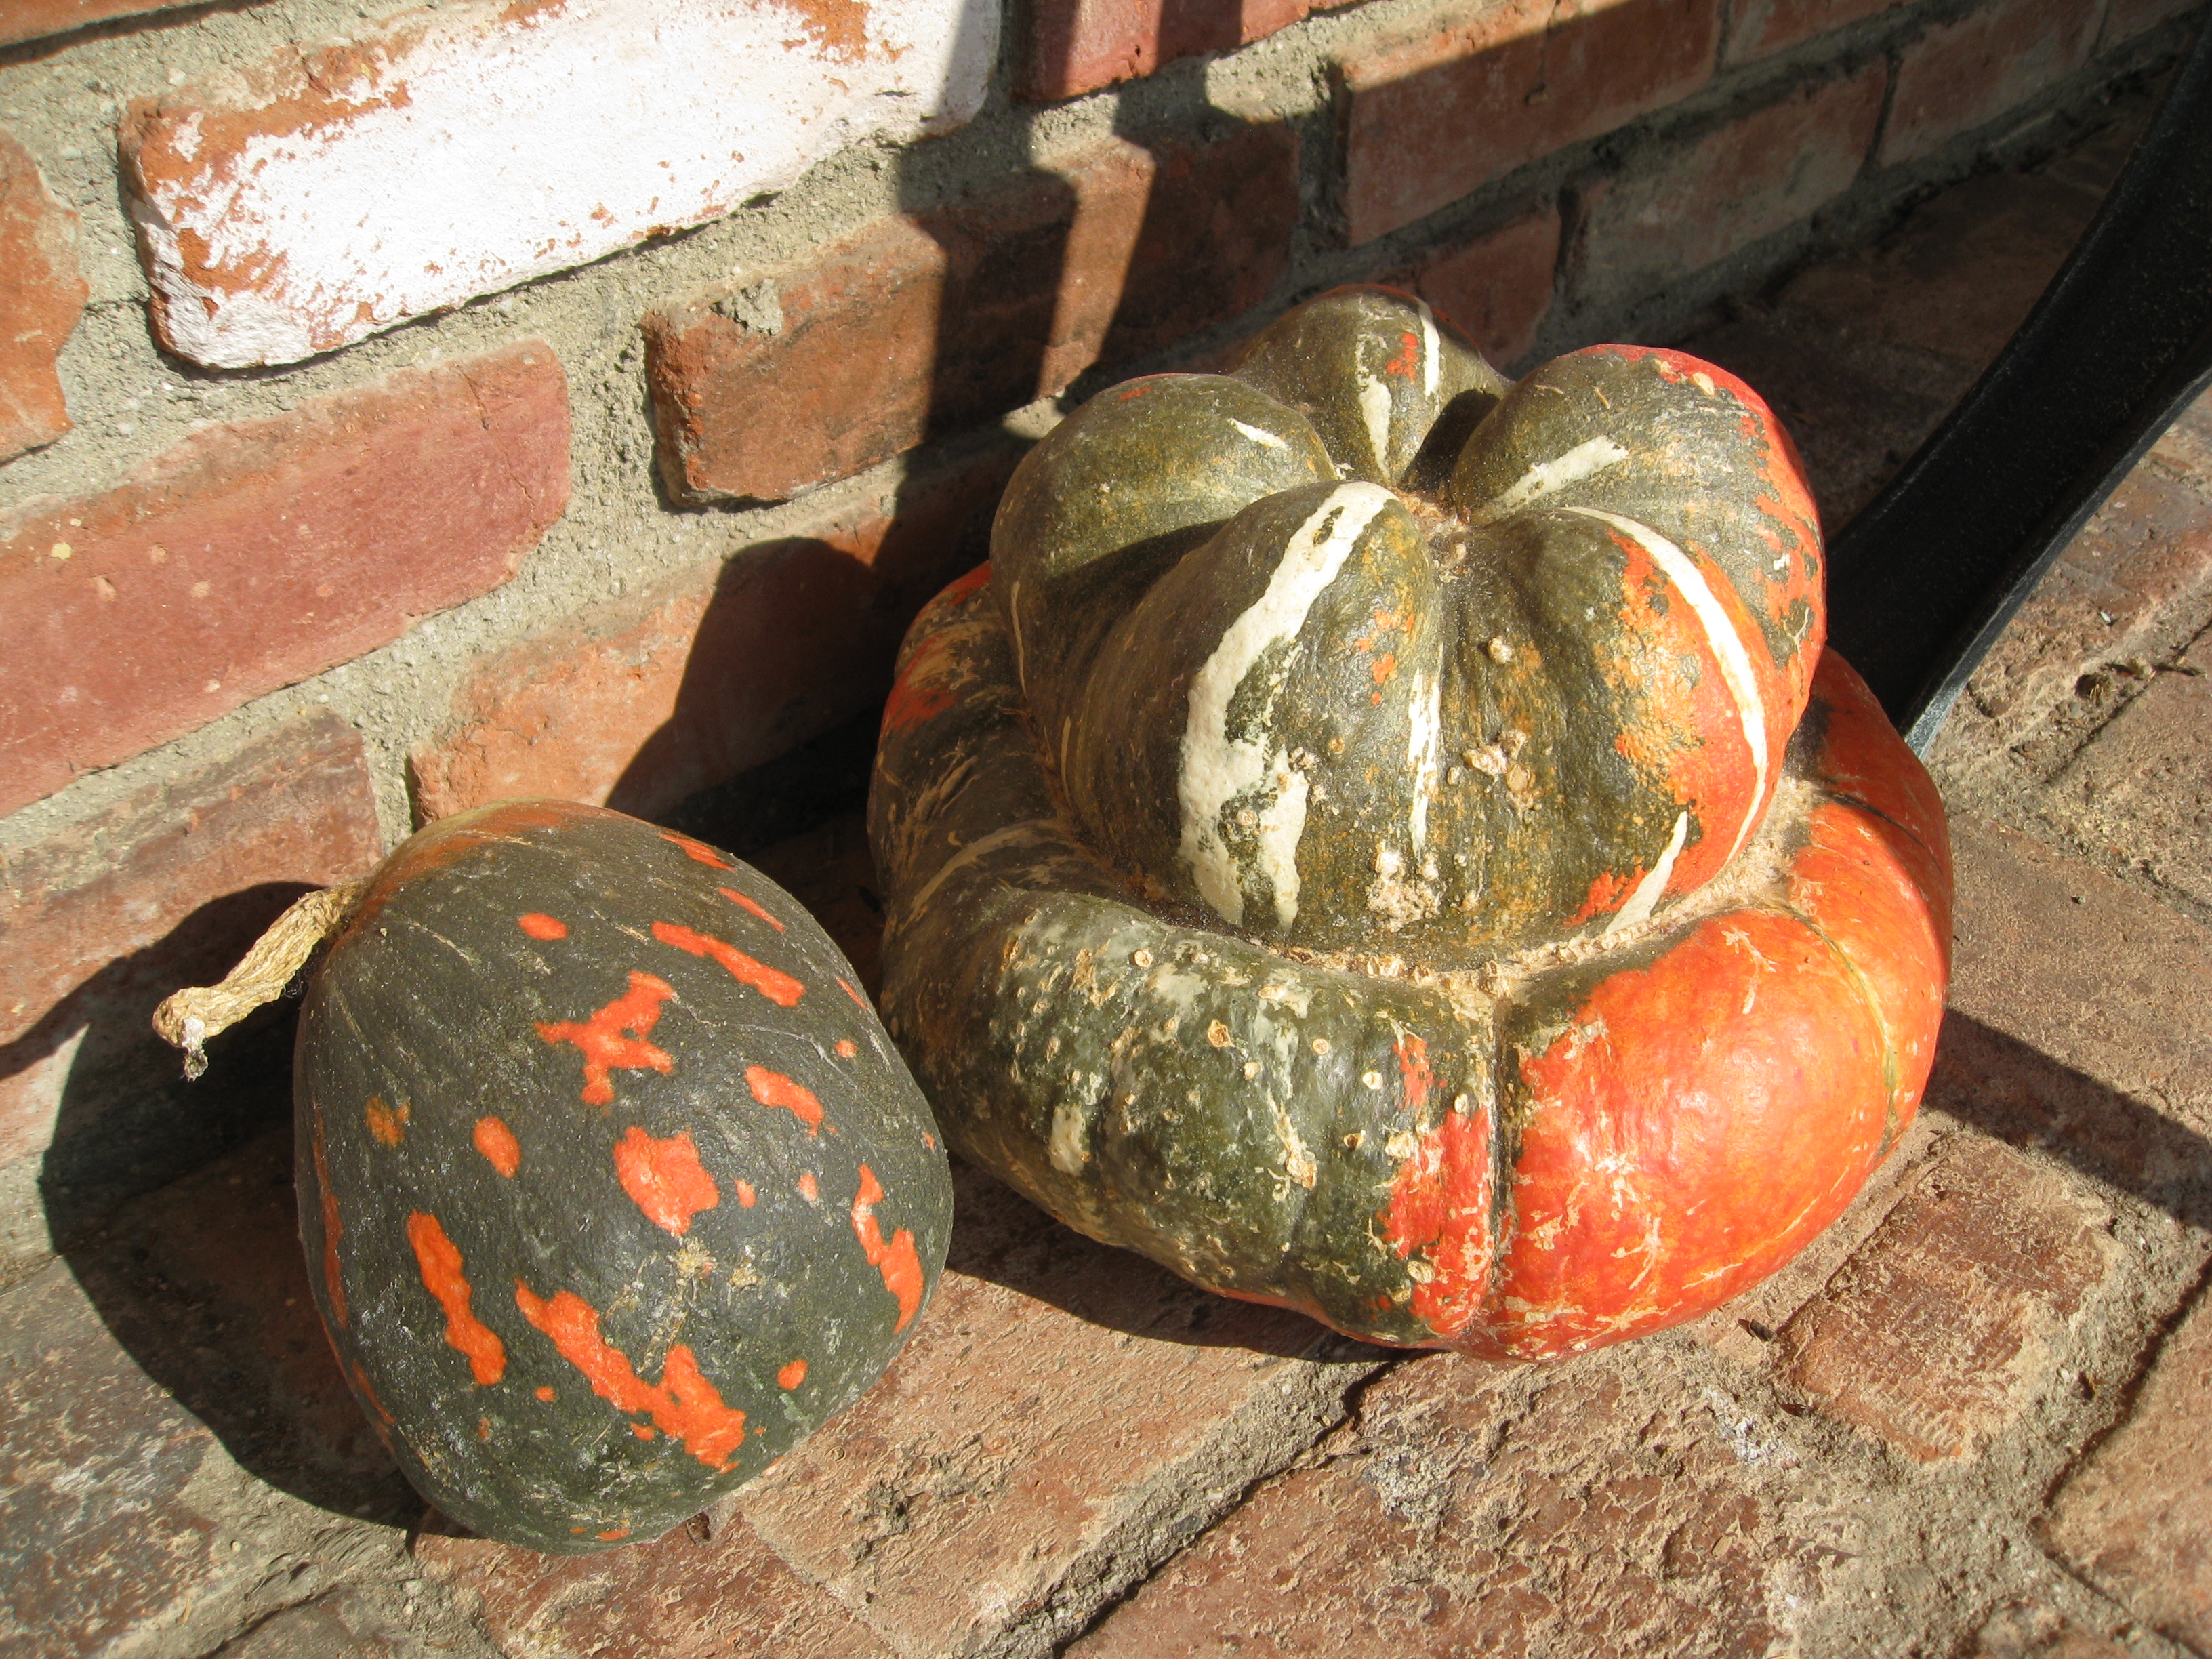 Lakota and Turban squashes decorate the front yard to add fall color